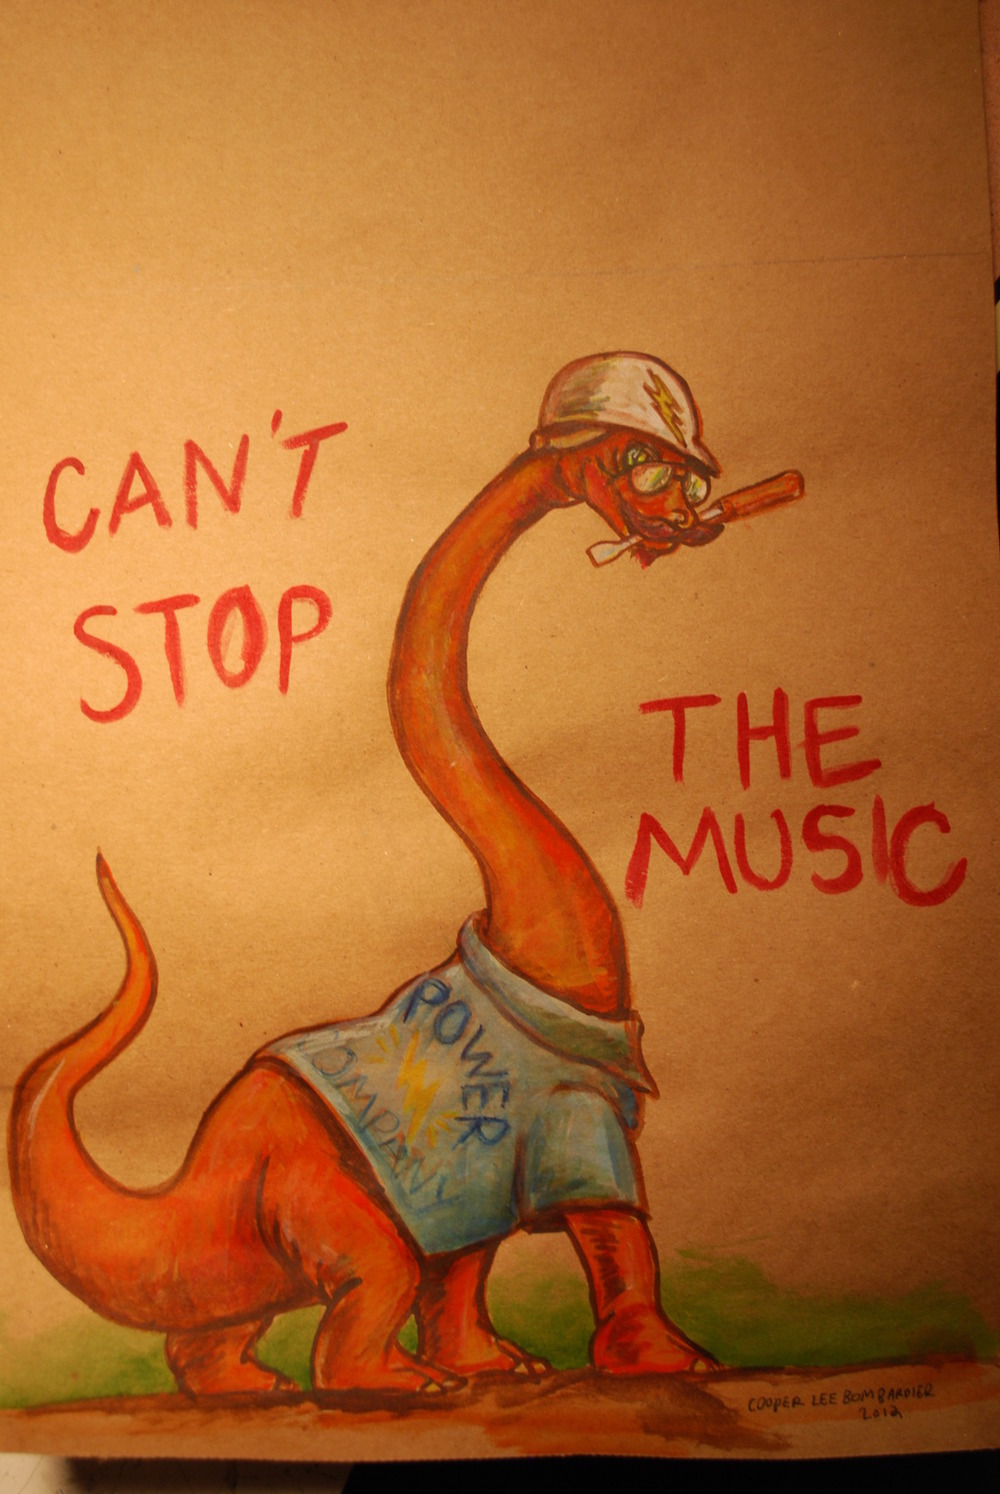 Faggot Dinosaur_Can't Stop The Music_by Cooper Lee Bombardier.jpg